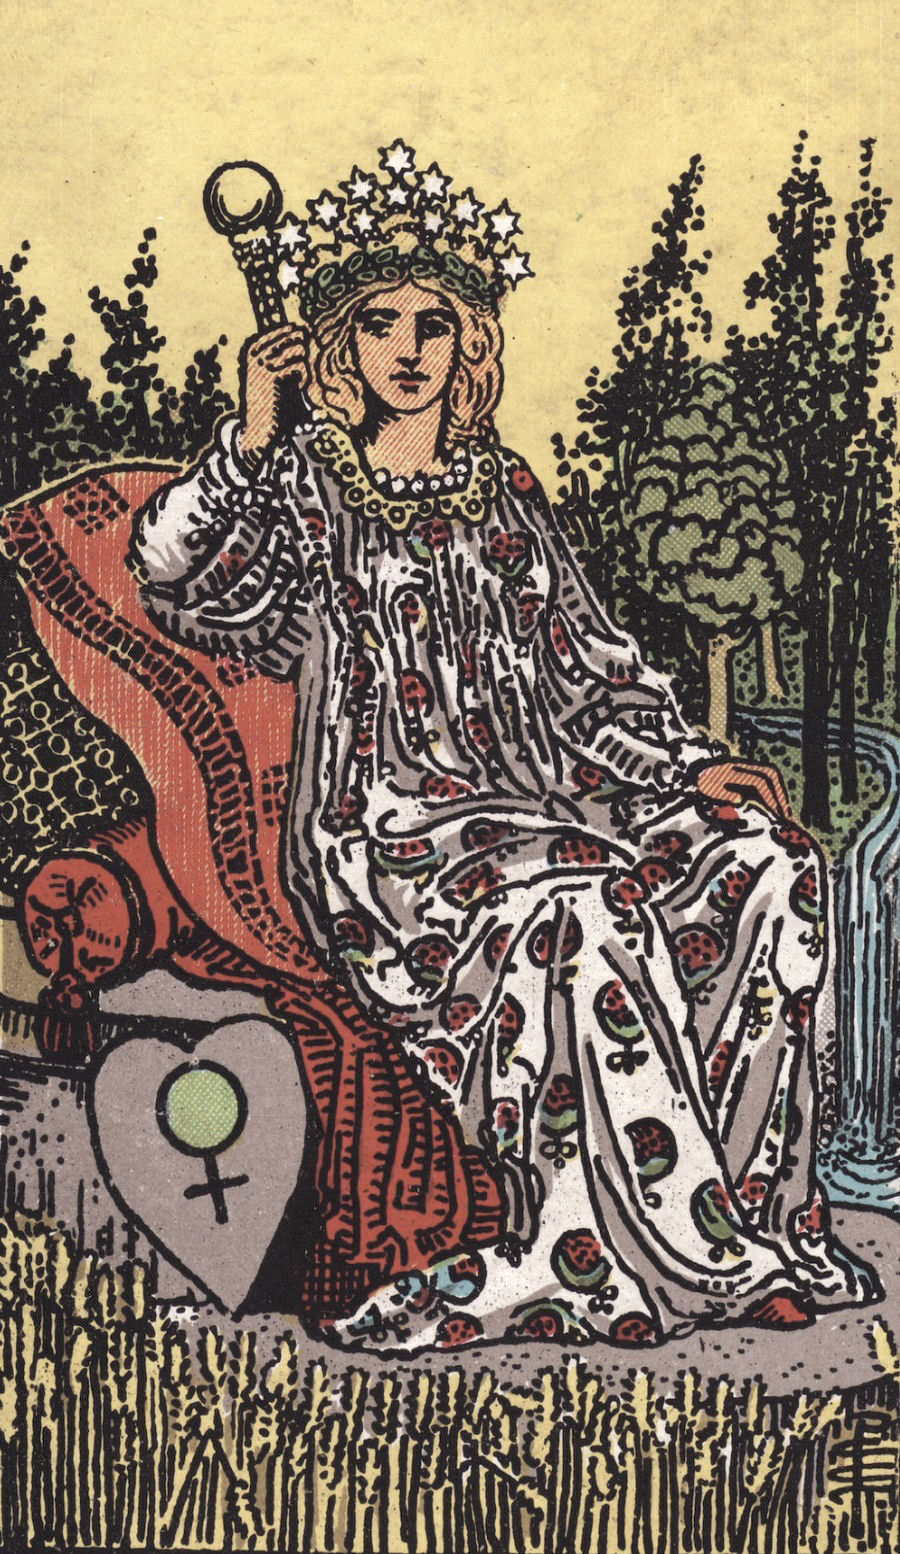 The Empress - Just looking at this card gives us an insight into its sexual meaning. Here is a woman who is clearly feeling herself.The grounded confidence of The Empress represents a deep-seated undertsanding of one's body as the root of their sexuality. Pleasure is wild, free, and undeniably hers. This card can reflect self-pleasuring, sexual generosity with healthy boundaries, and valuing pleasure for pleasure's sake.